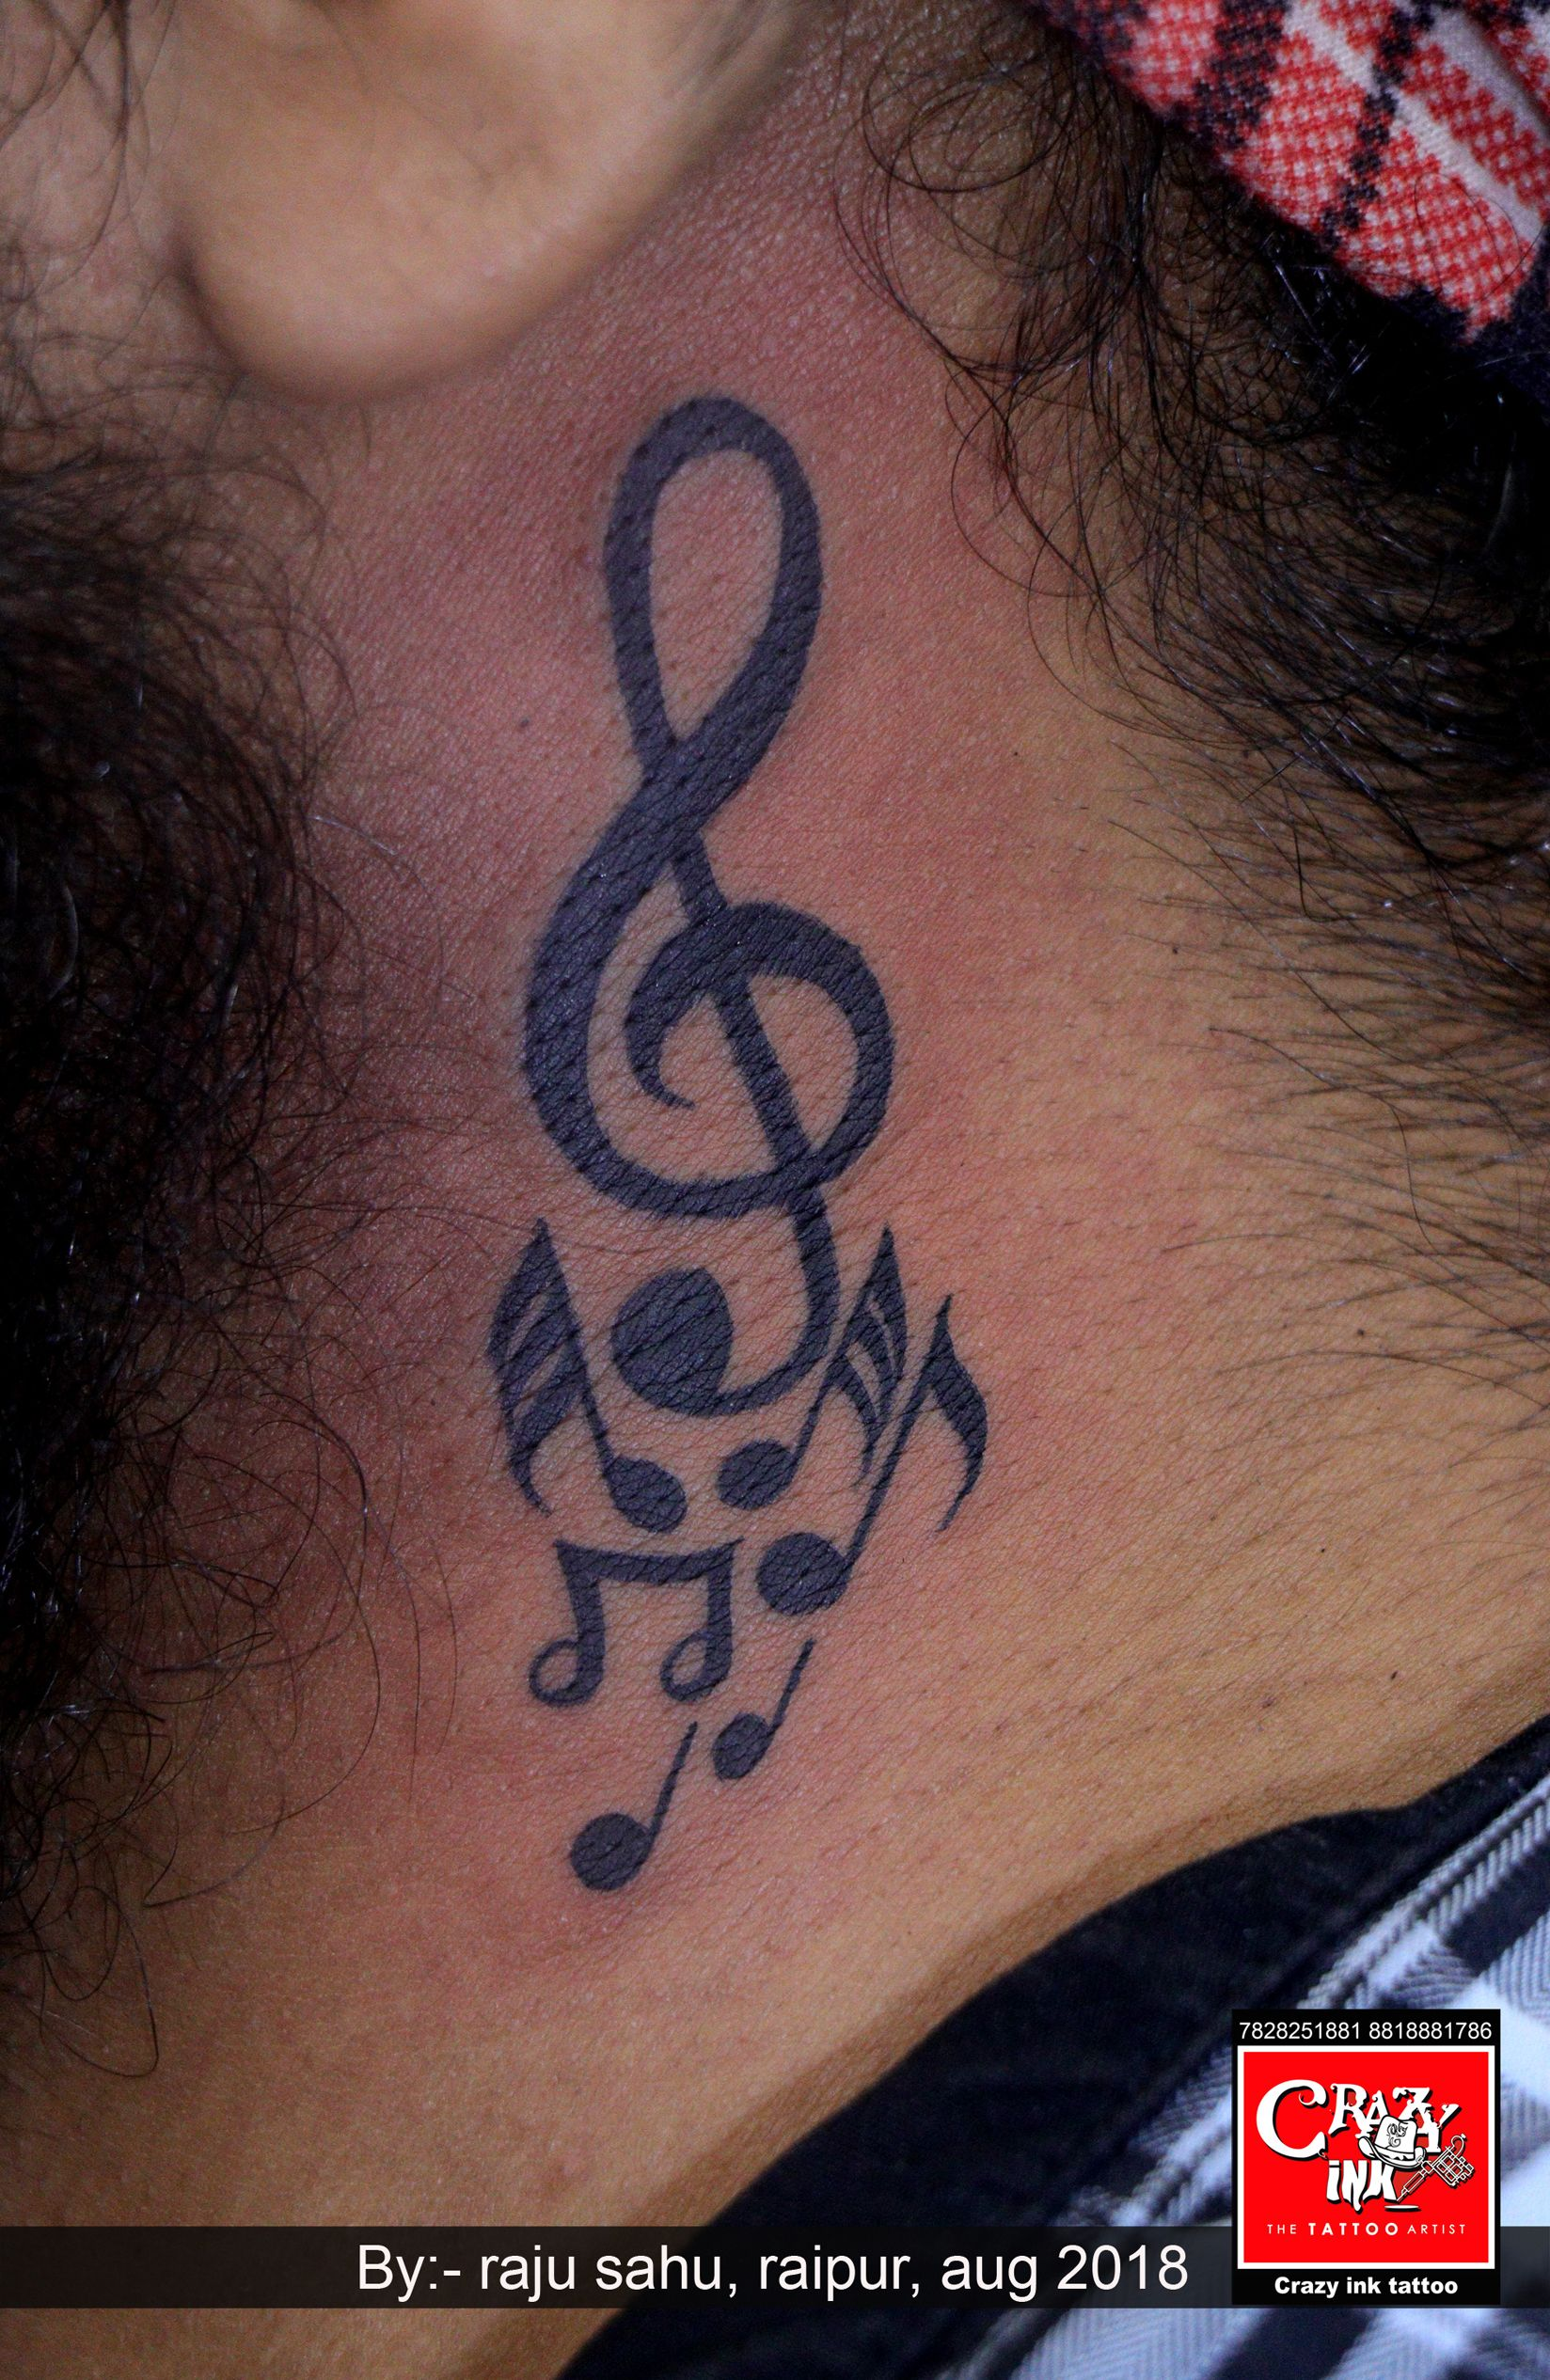 Crazy Ink Tattoo Neck Tattoo For Guys Hand Tattoos For Guys Tattoos